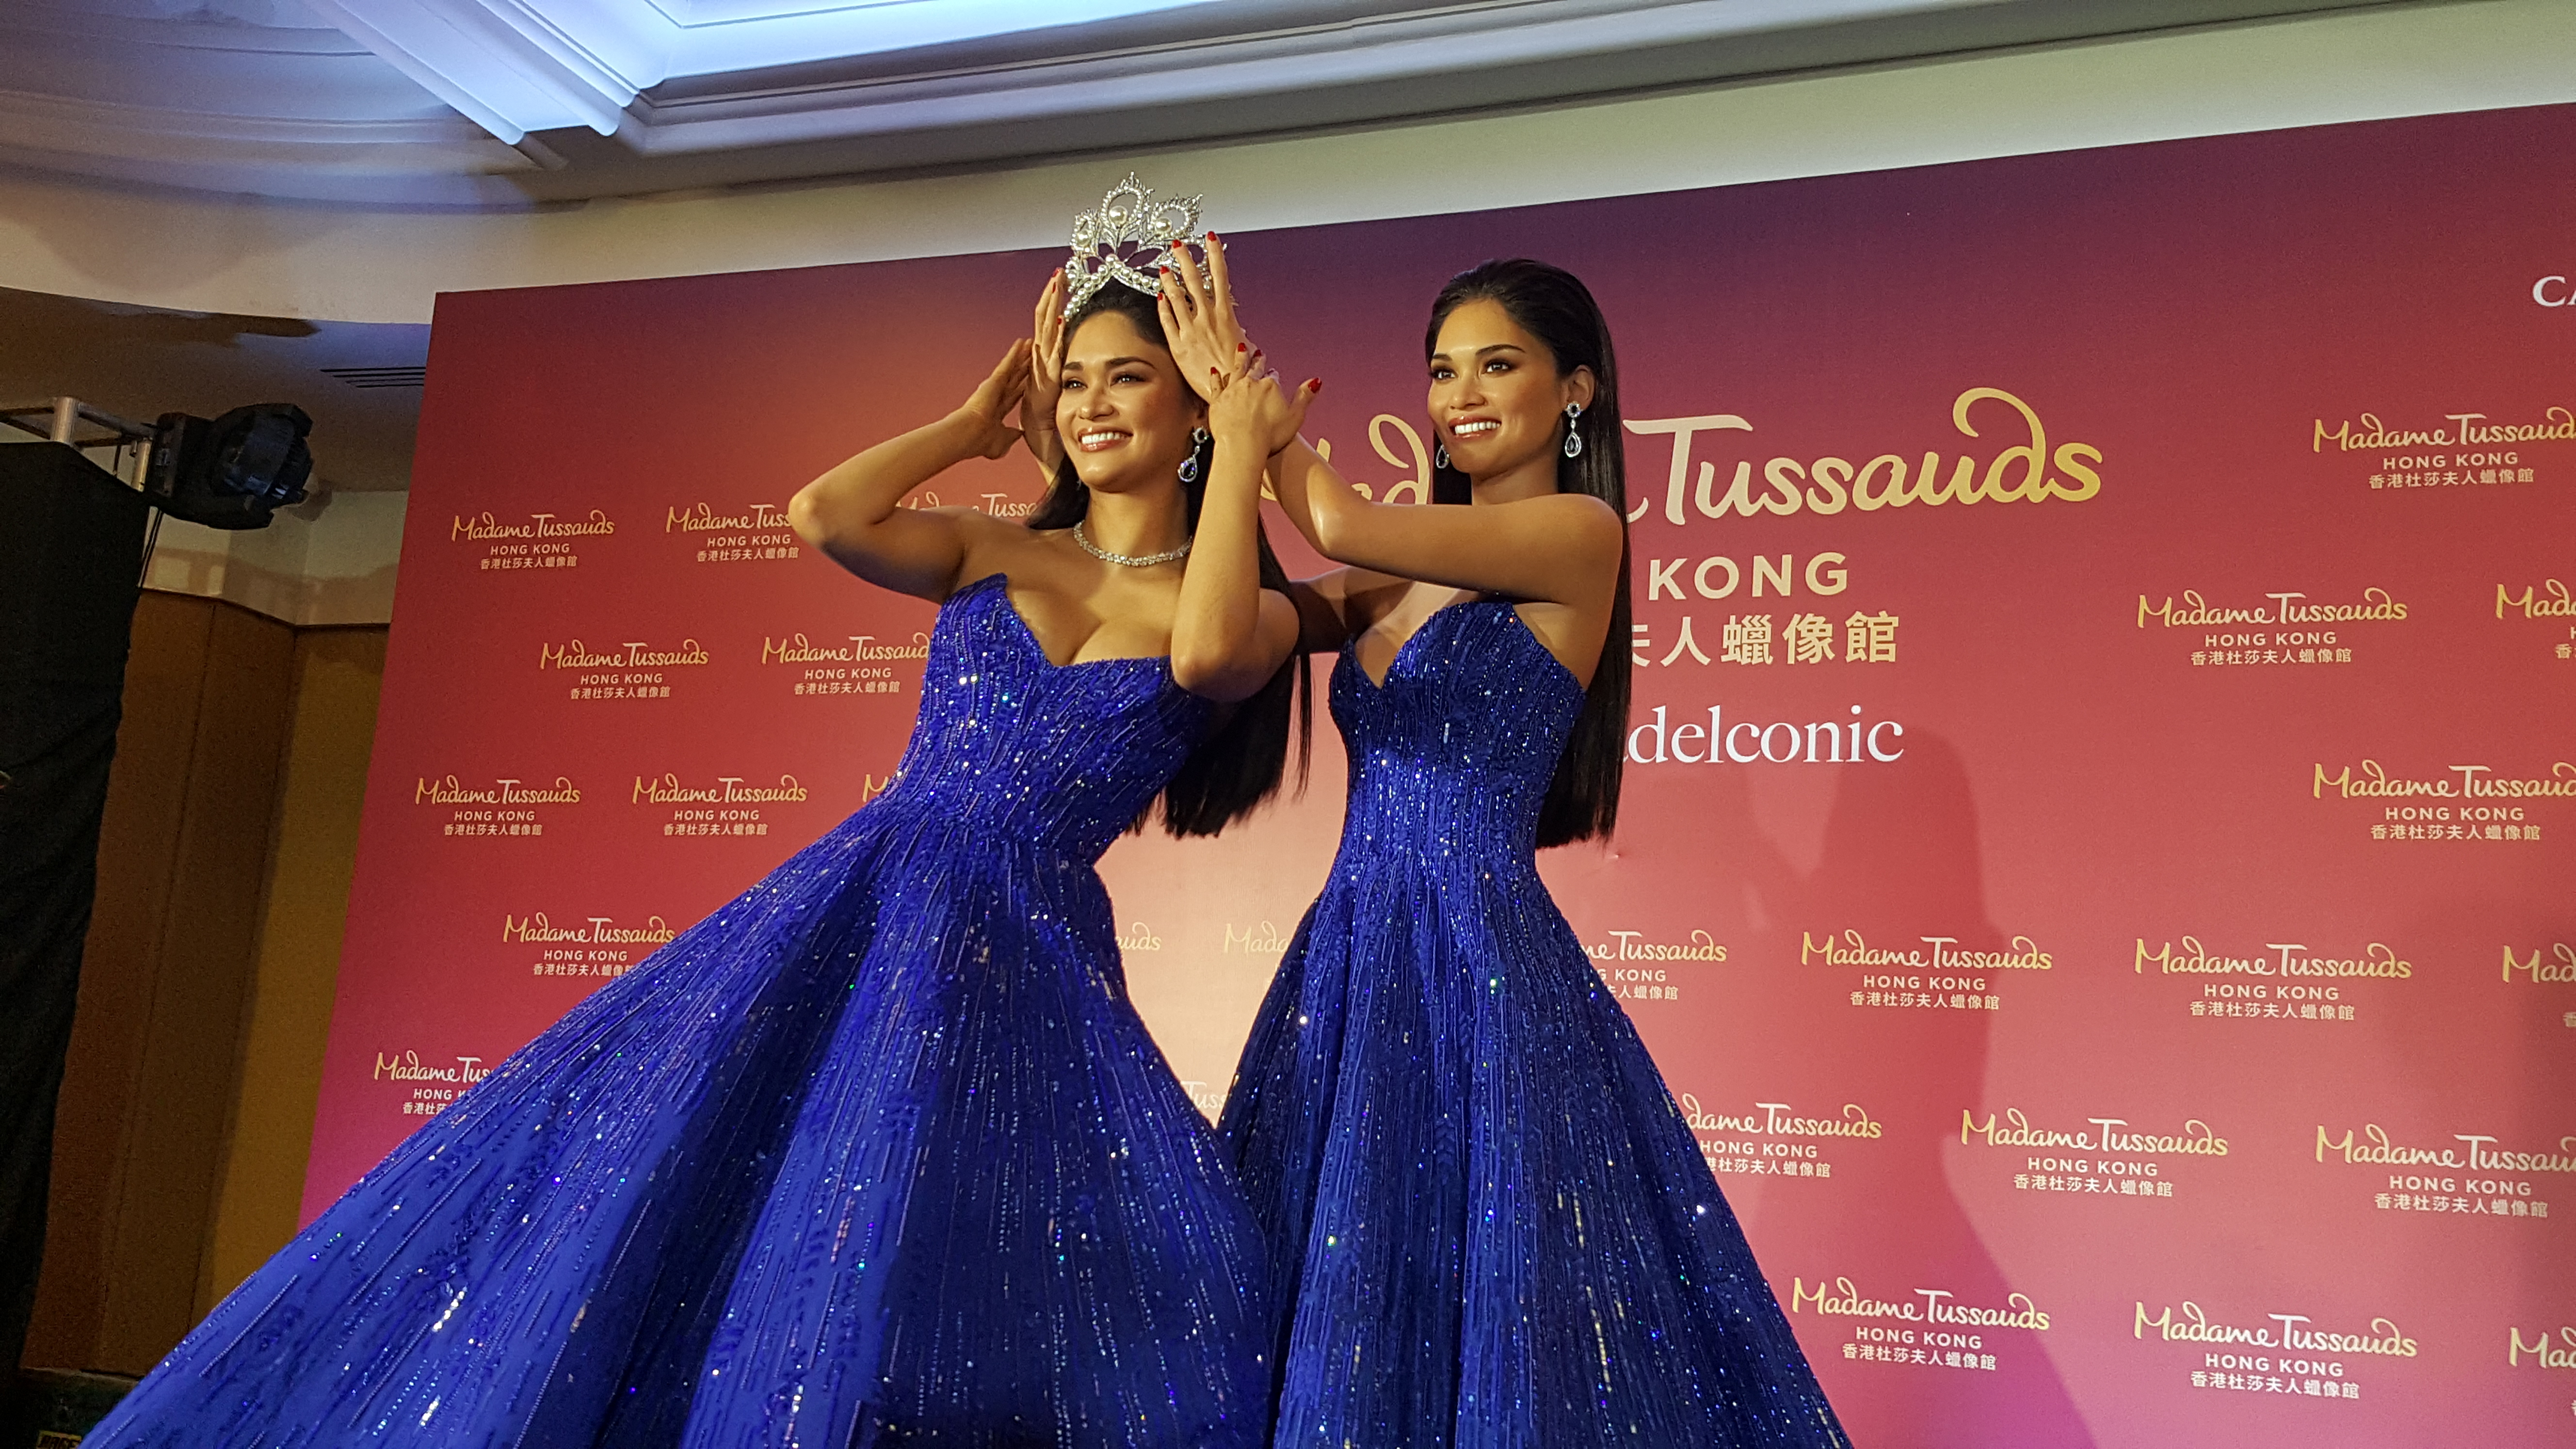 DOUBLE LOOK. Pia crowns herself next to the wax figure.